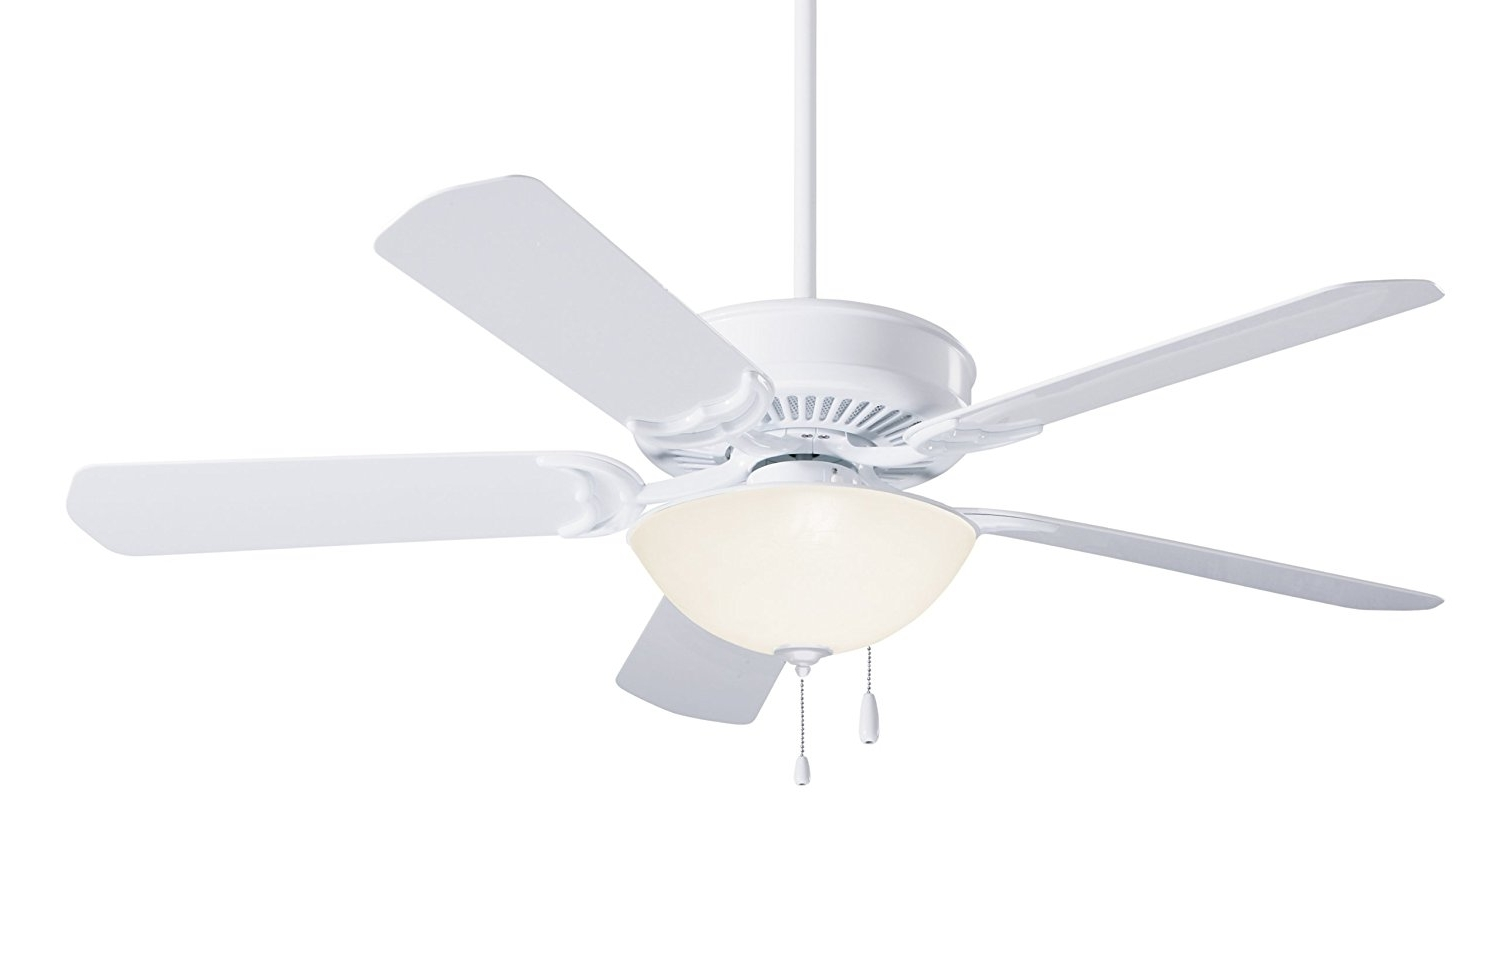 Well Known Ceiling Fan: Breathtaking Ceiling Fan Cfm Ideas Ceiling Fans With Throughout Outdoor Ceiling Fans With High Cfm (View 8 of 20)